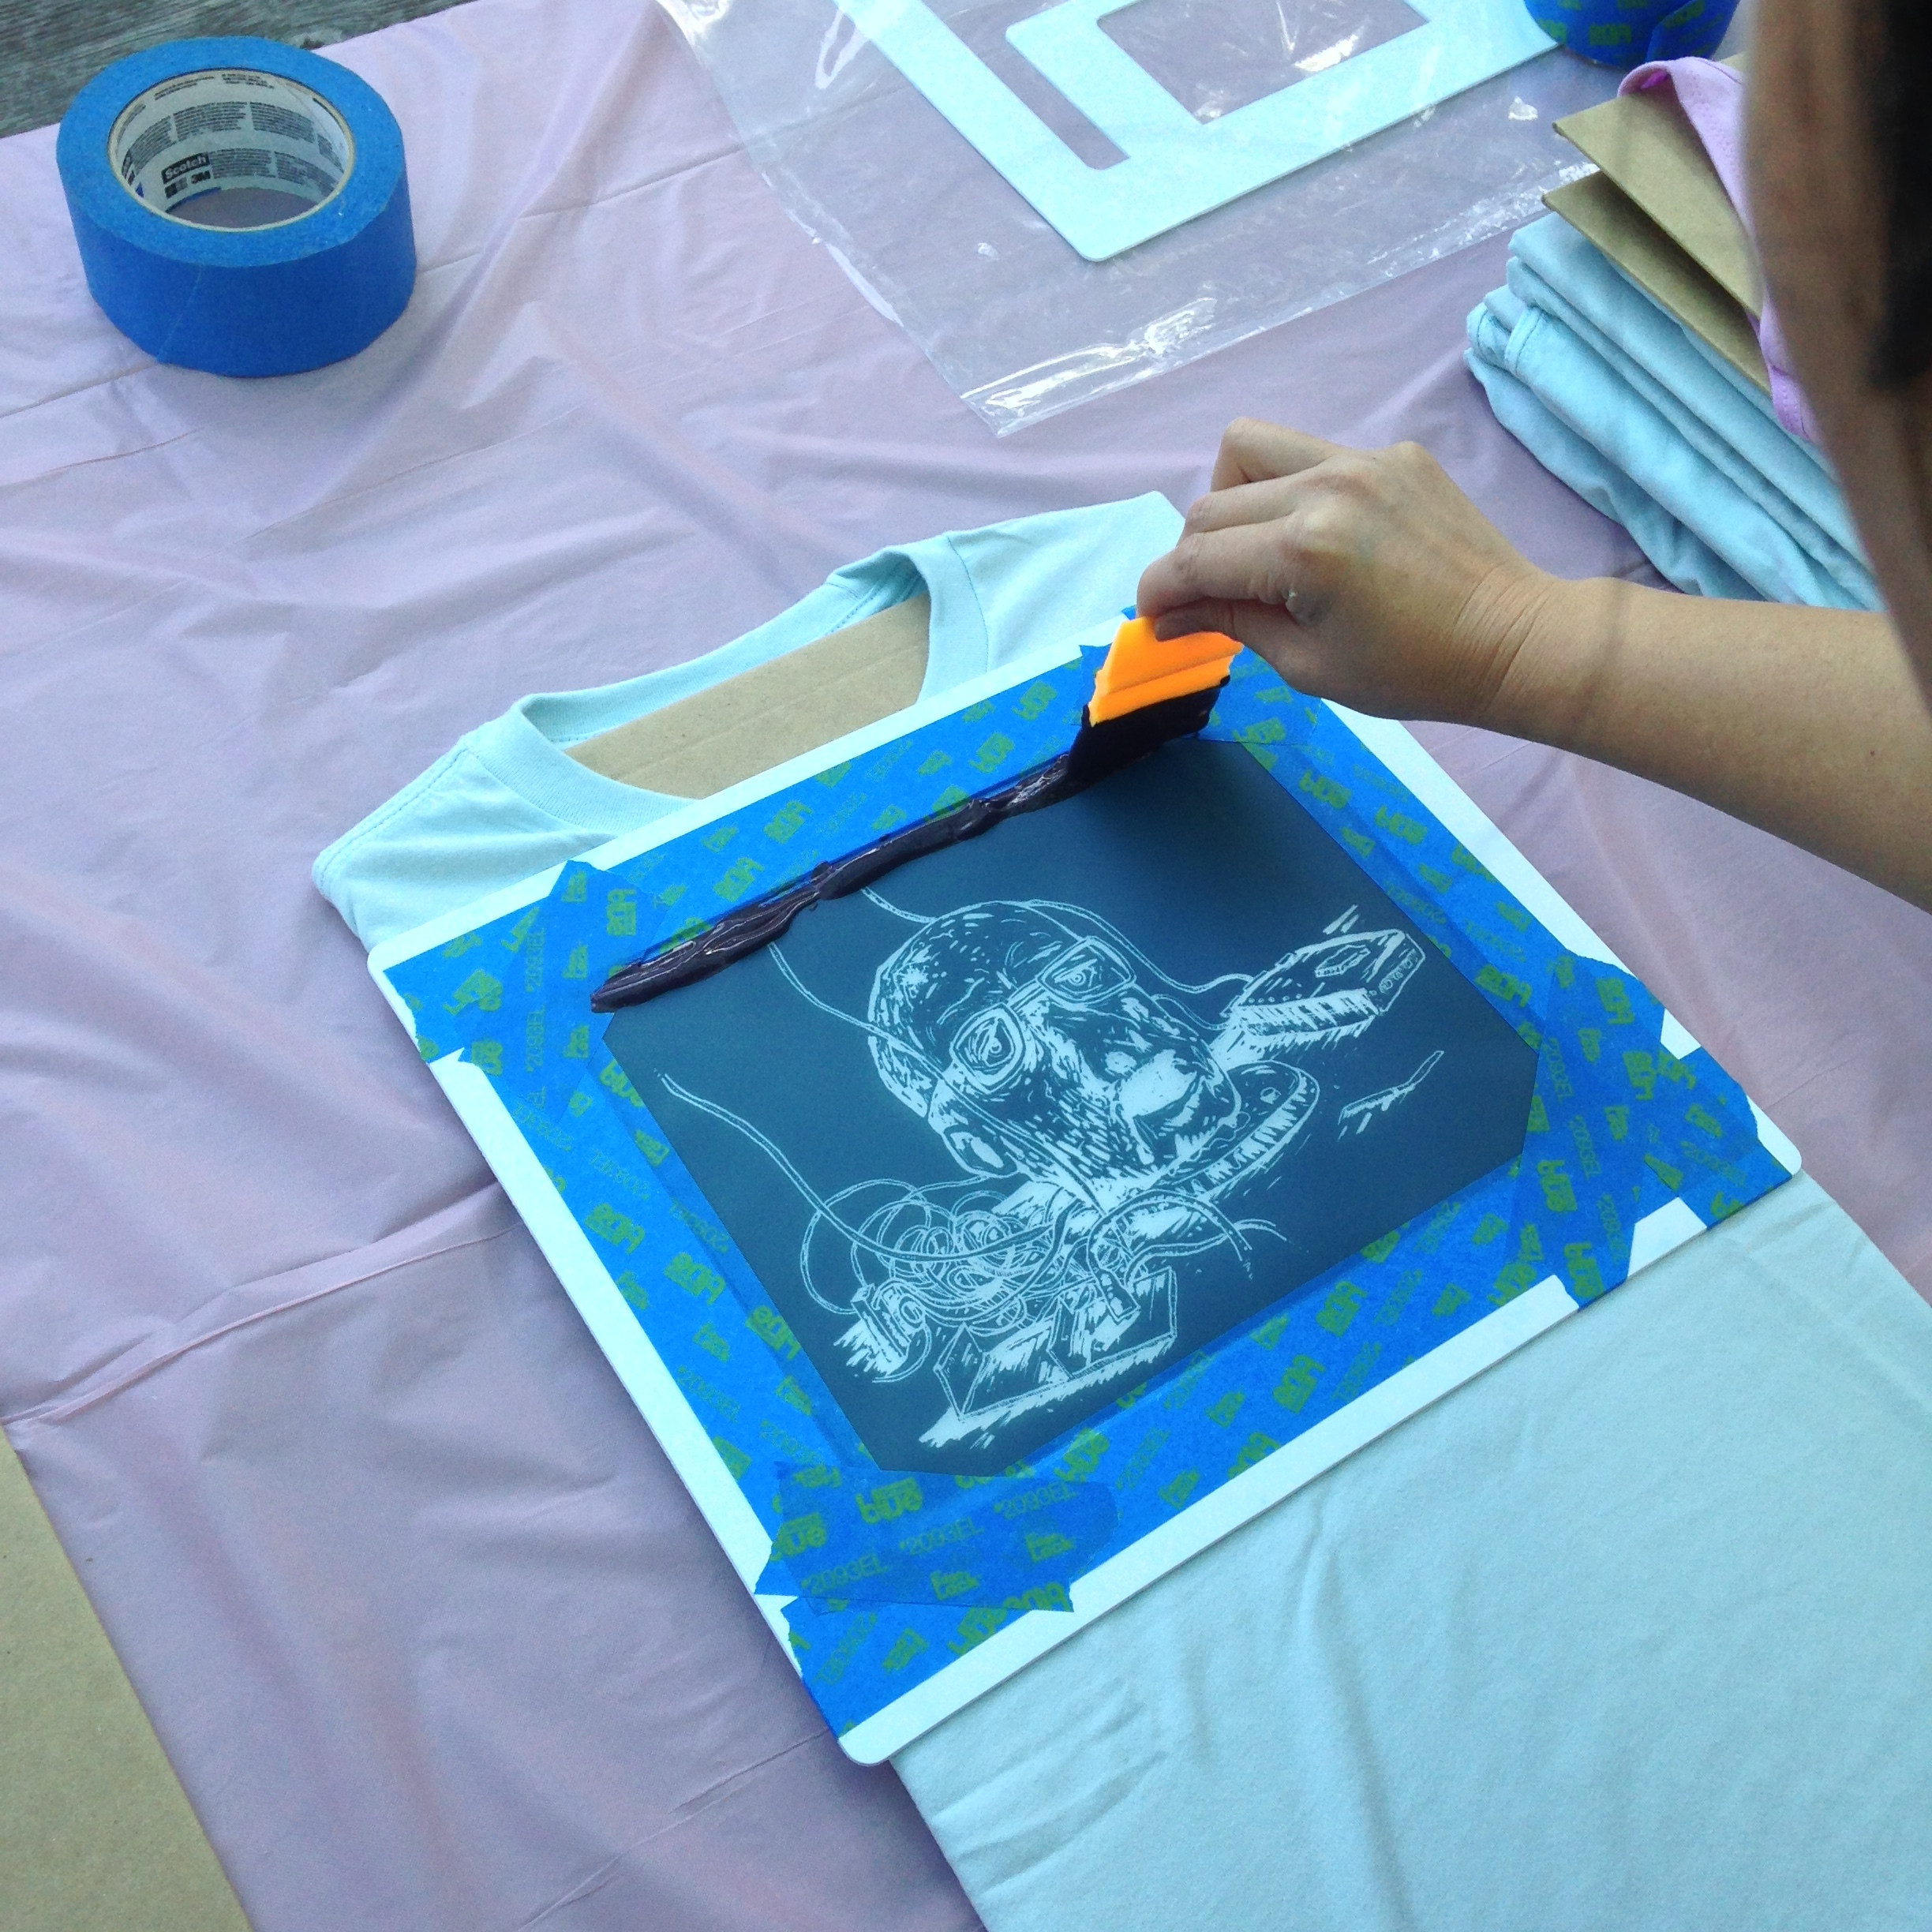 It takes a steady hand to smooth out that ink when screen printing one at a time.